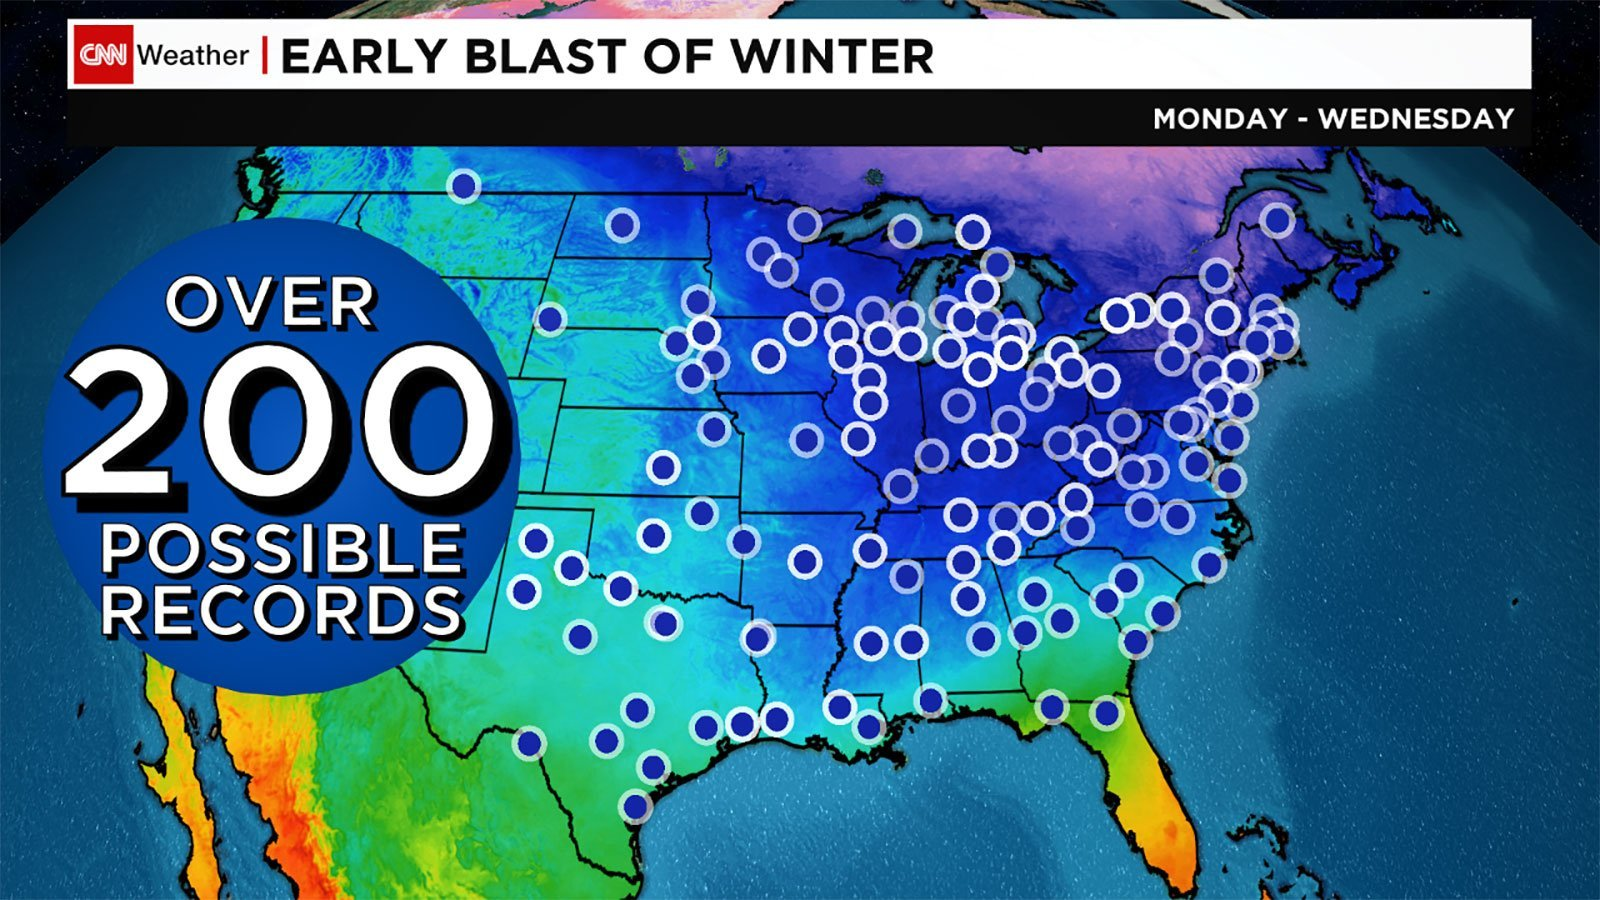 East Coast freeze will be so cold, it could break up to 200 records